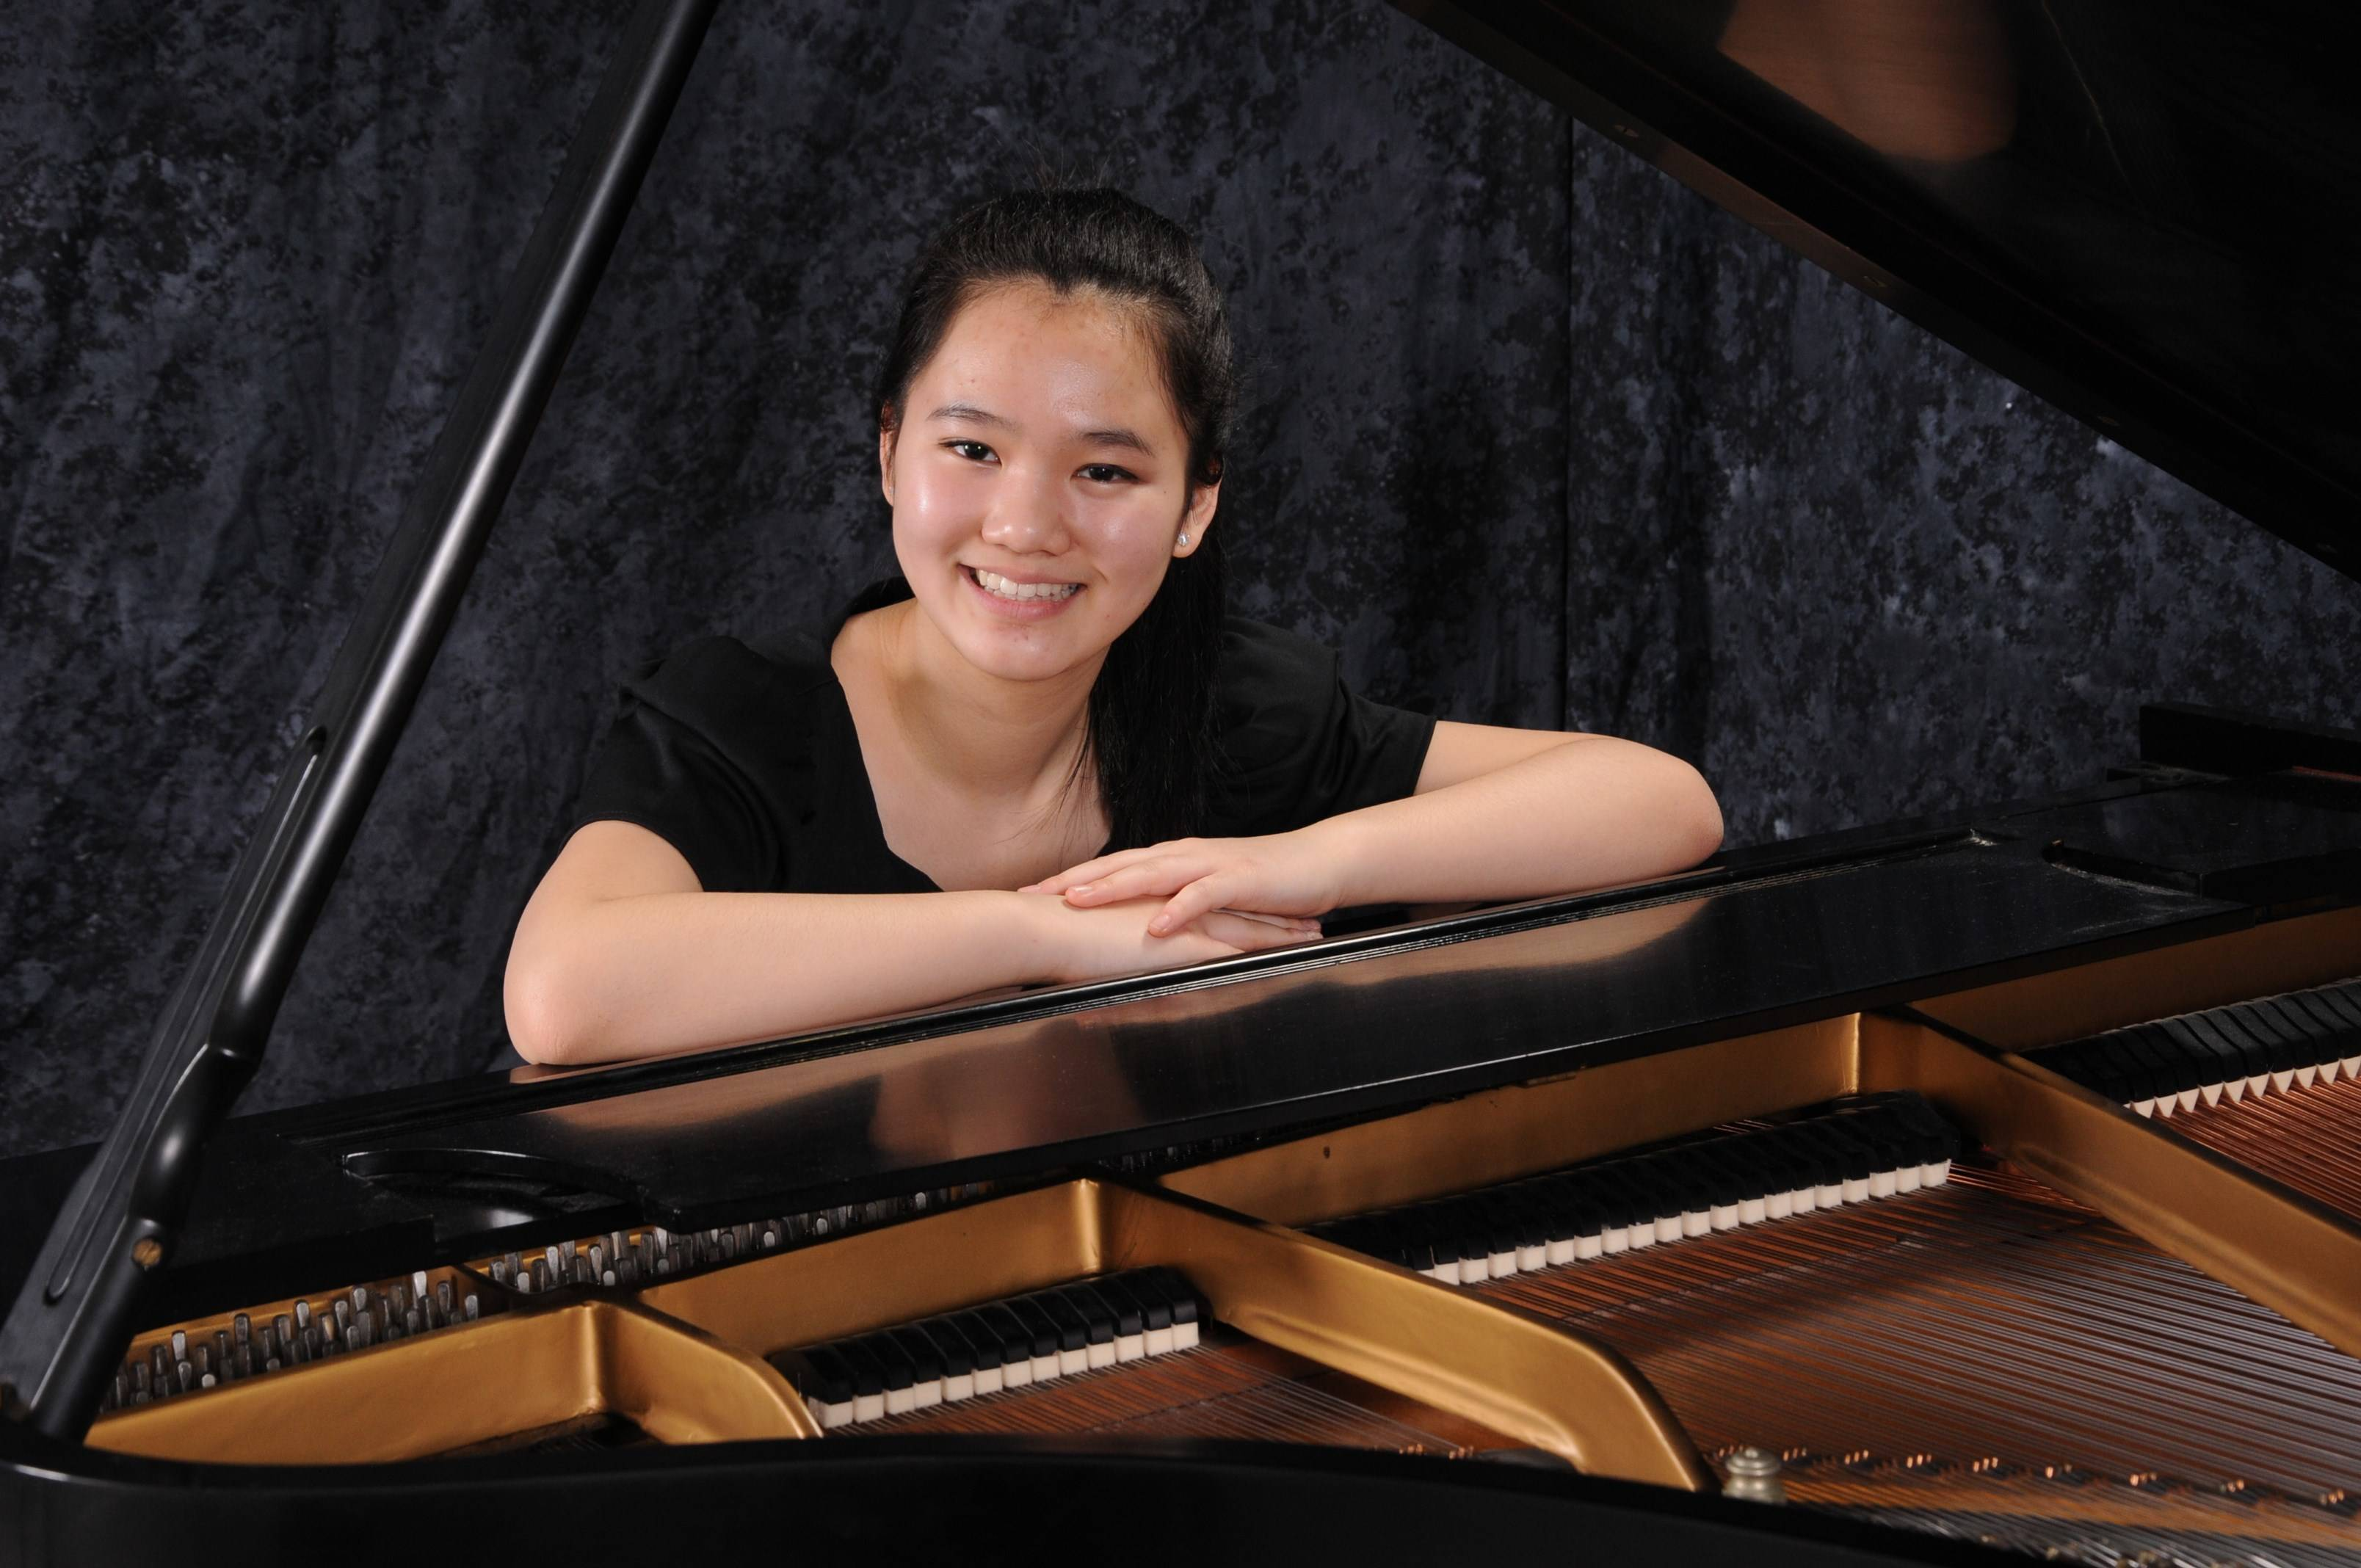 35886628cdeadaf5b21a_Photo_1___Seventeen-year-old_pianist_Angela_Zhao_was_the_winner_of_NJIO_Young_Artist_Concerto_Competition.jpg